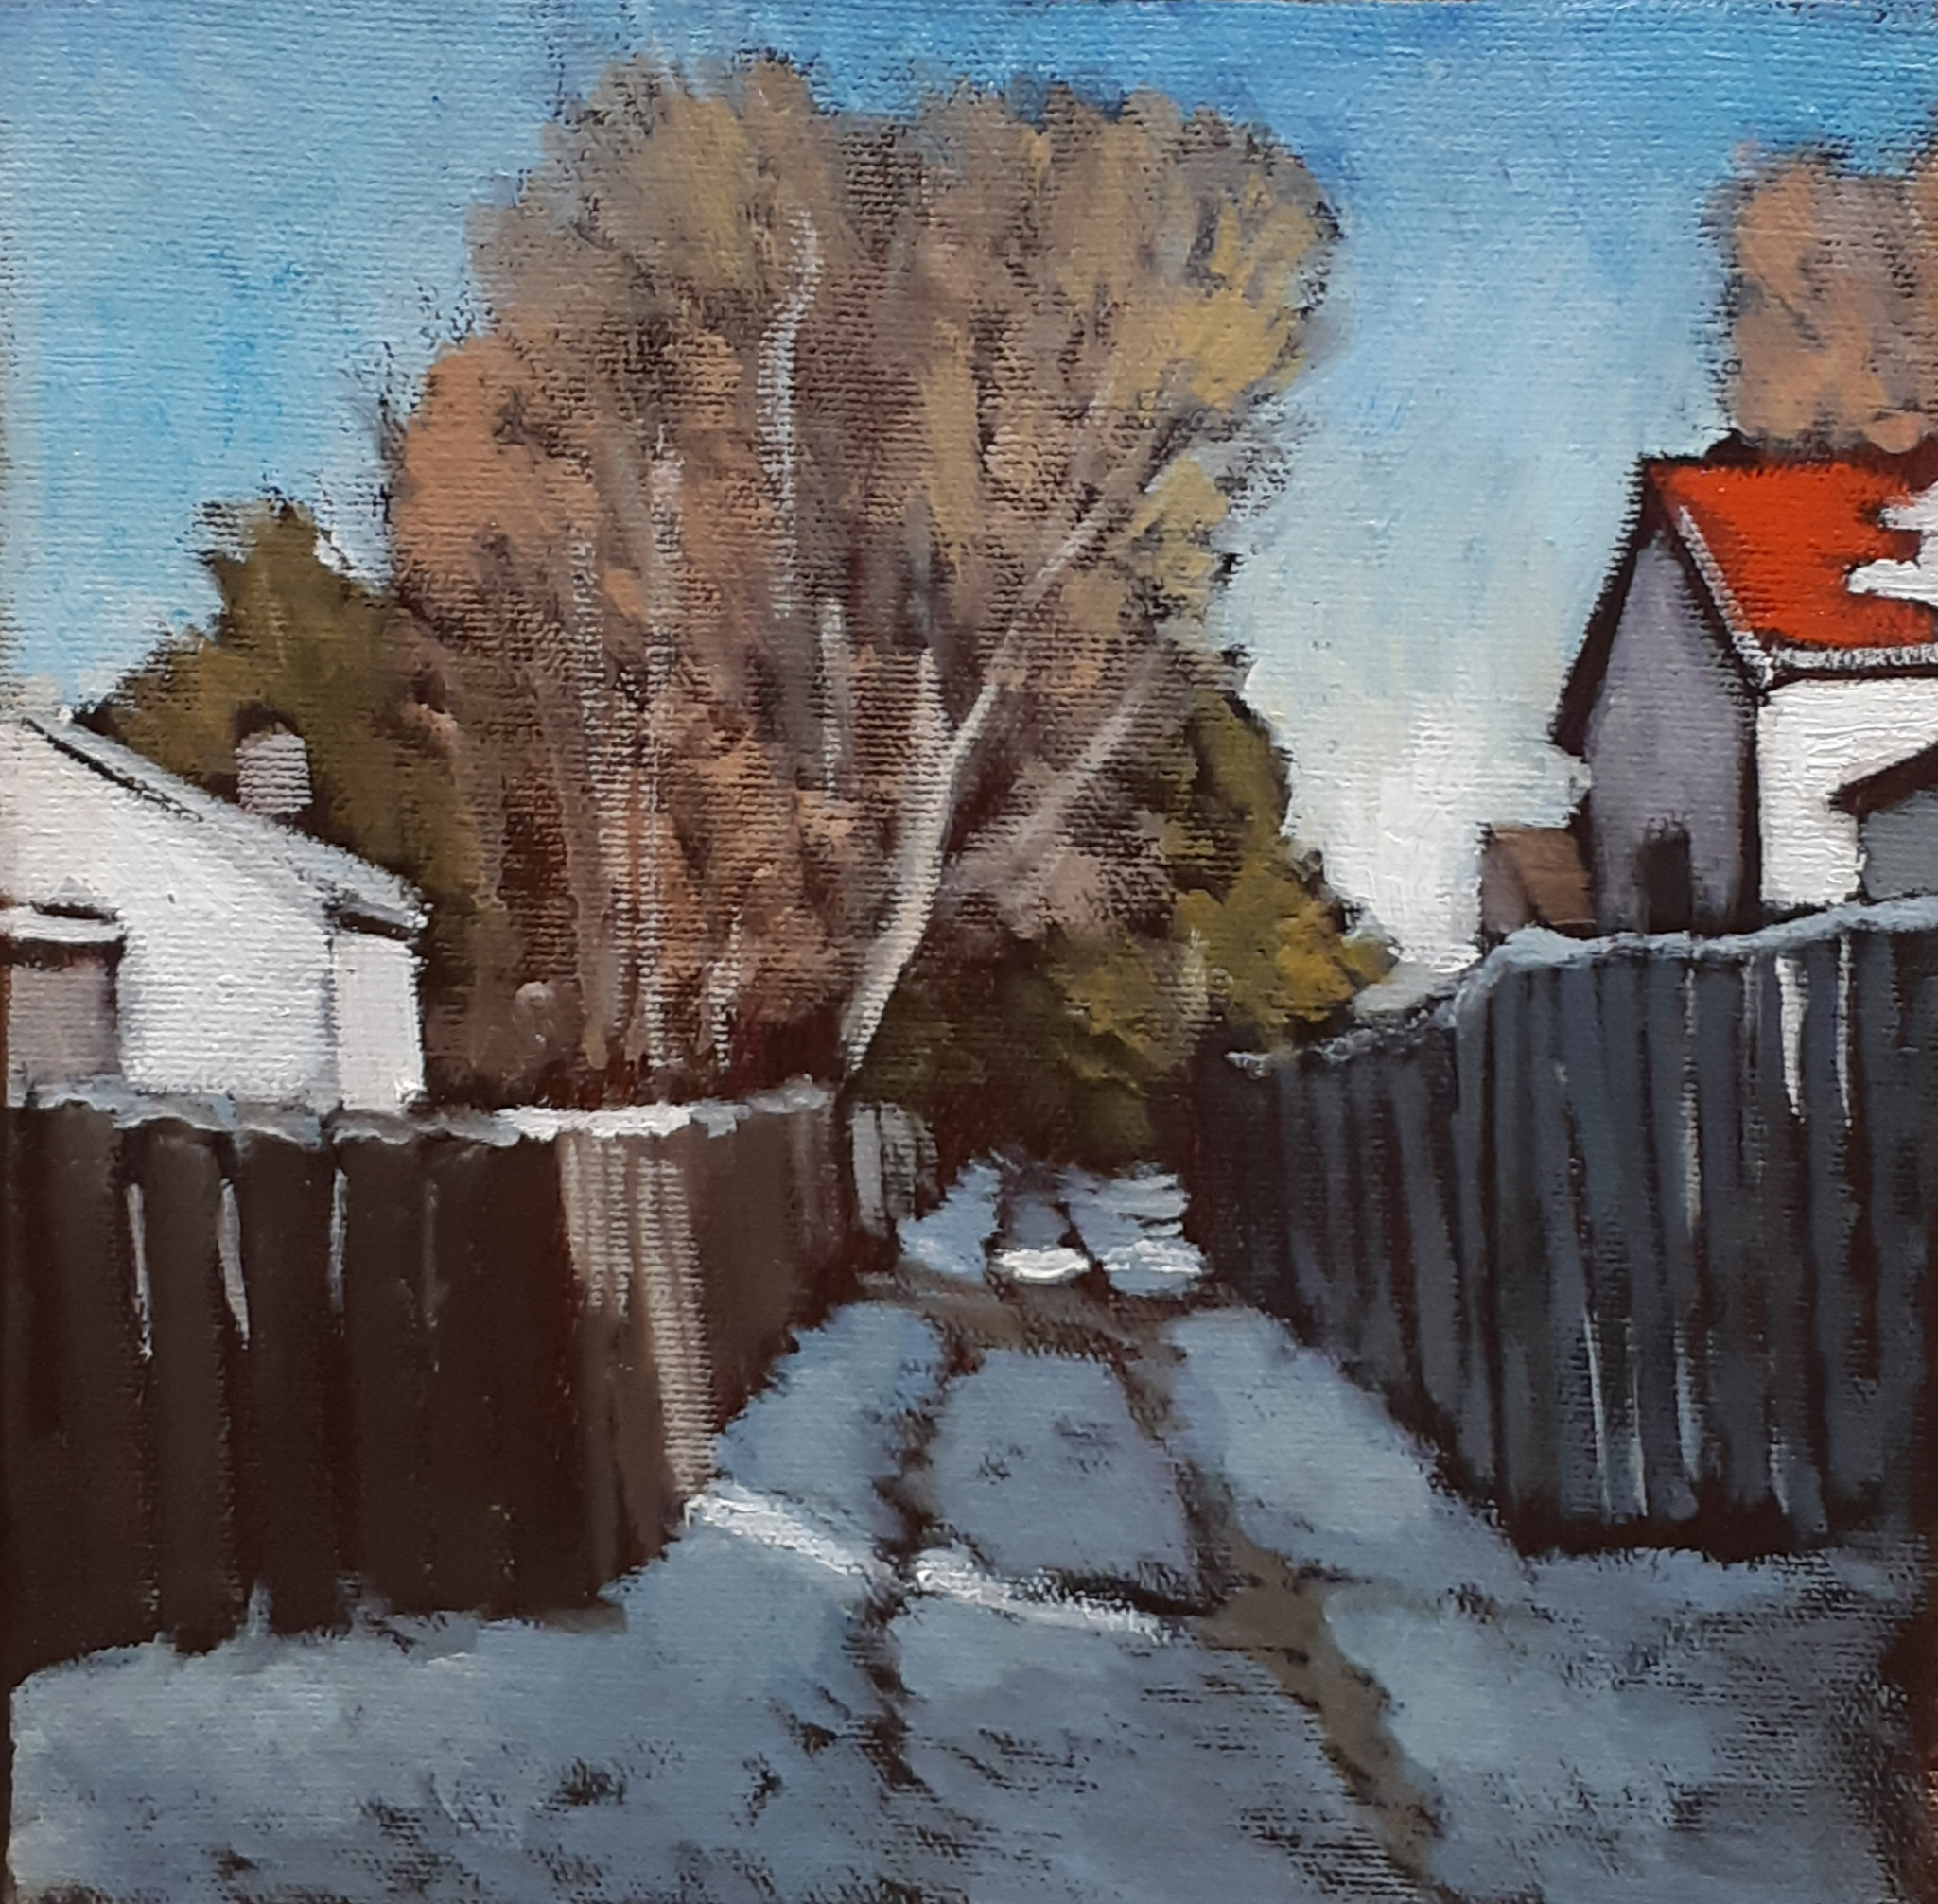 SHORTEST TO MY HOUSE - 12X12 - OIL ON CANCAS - 2019